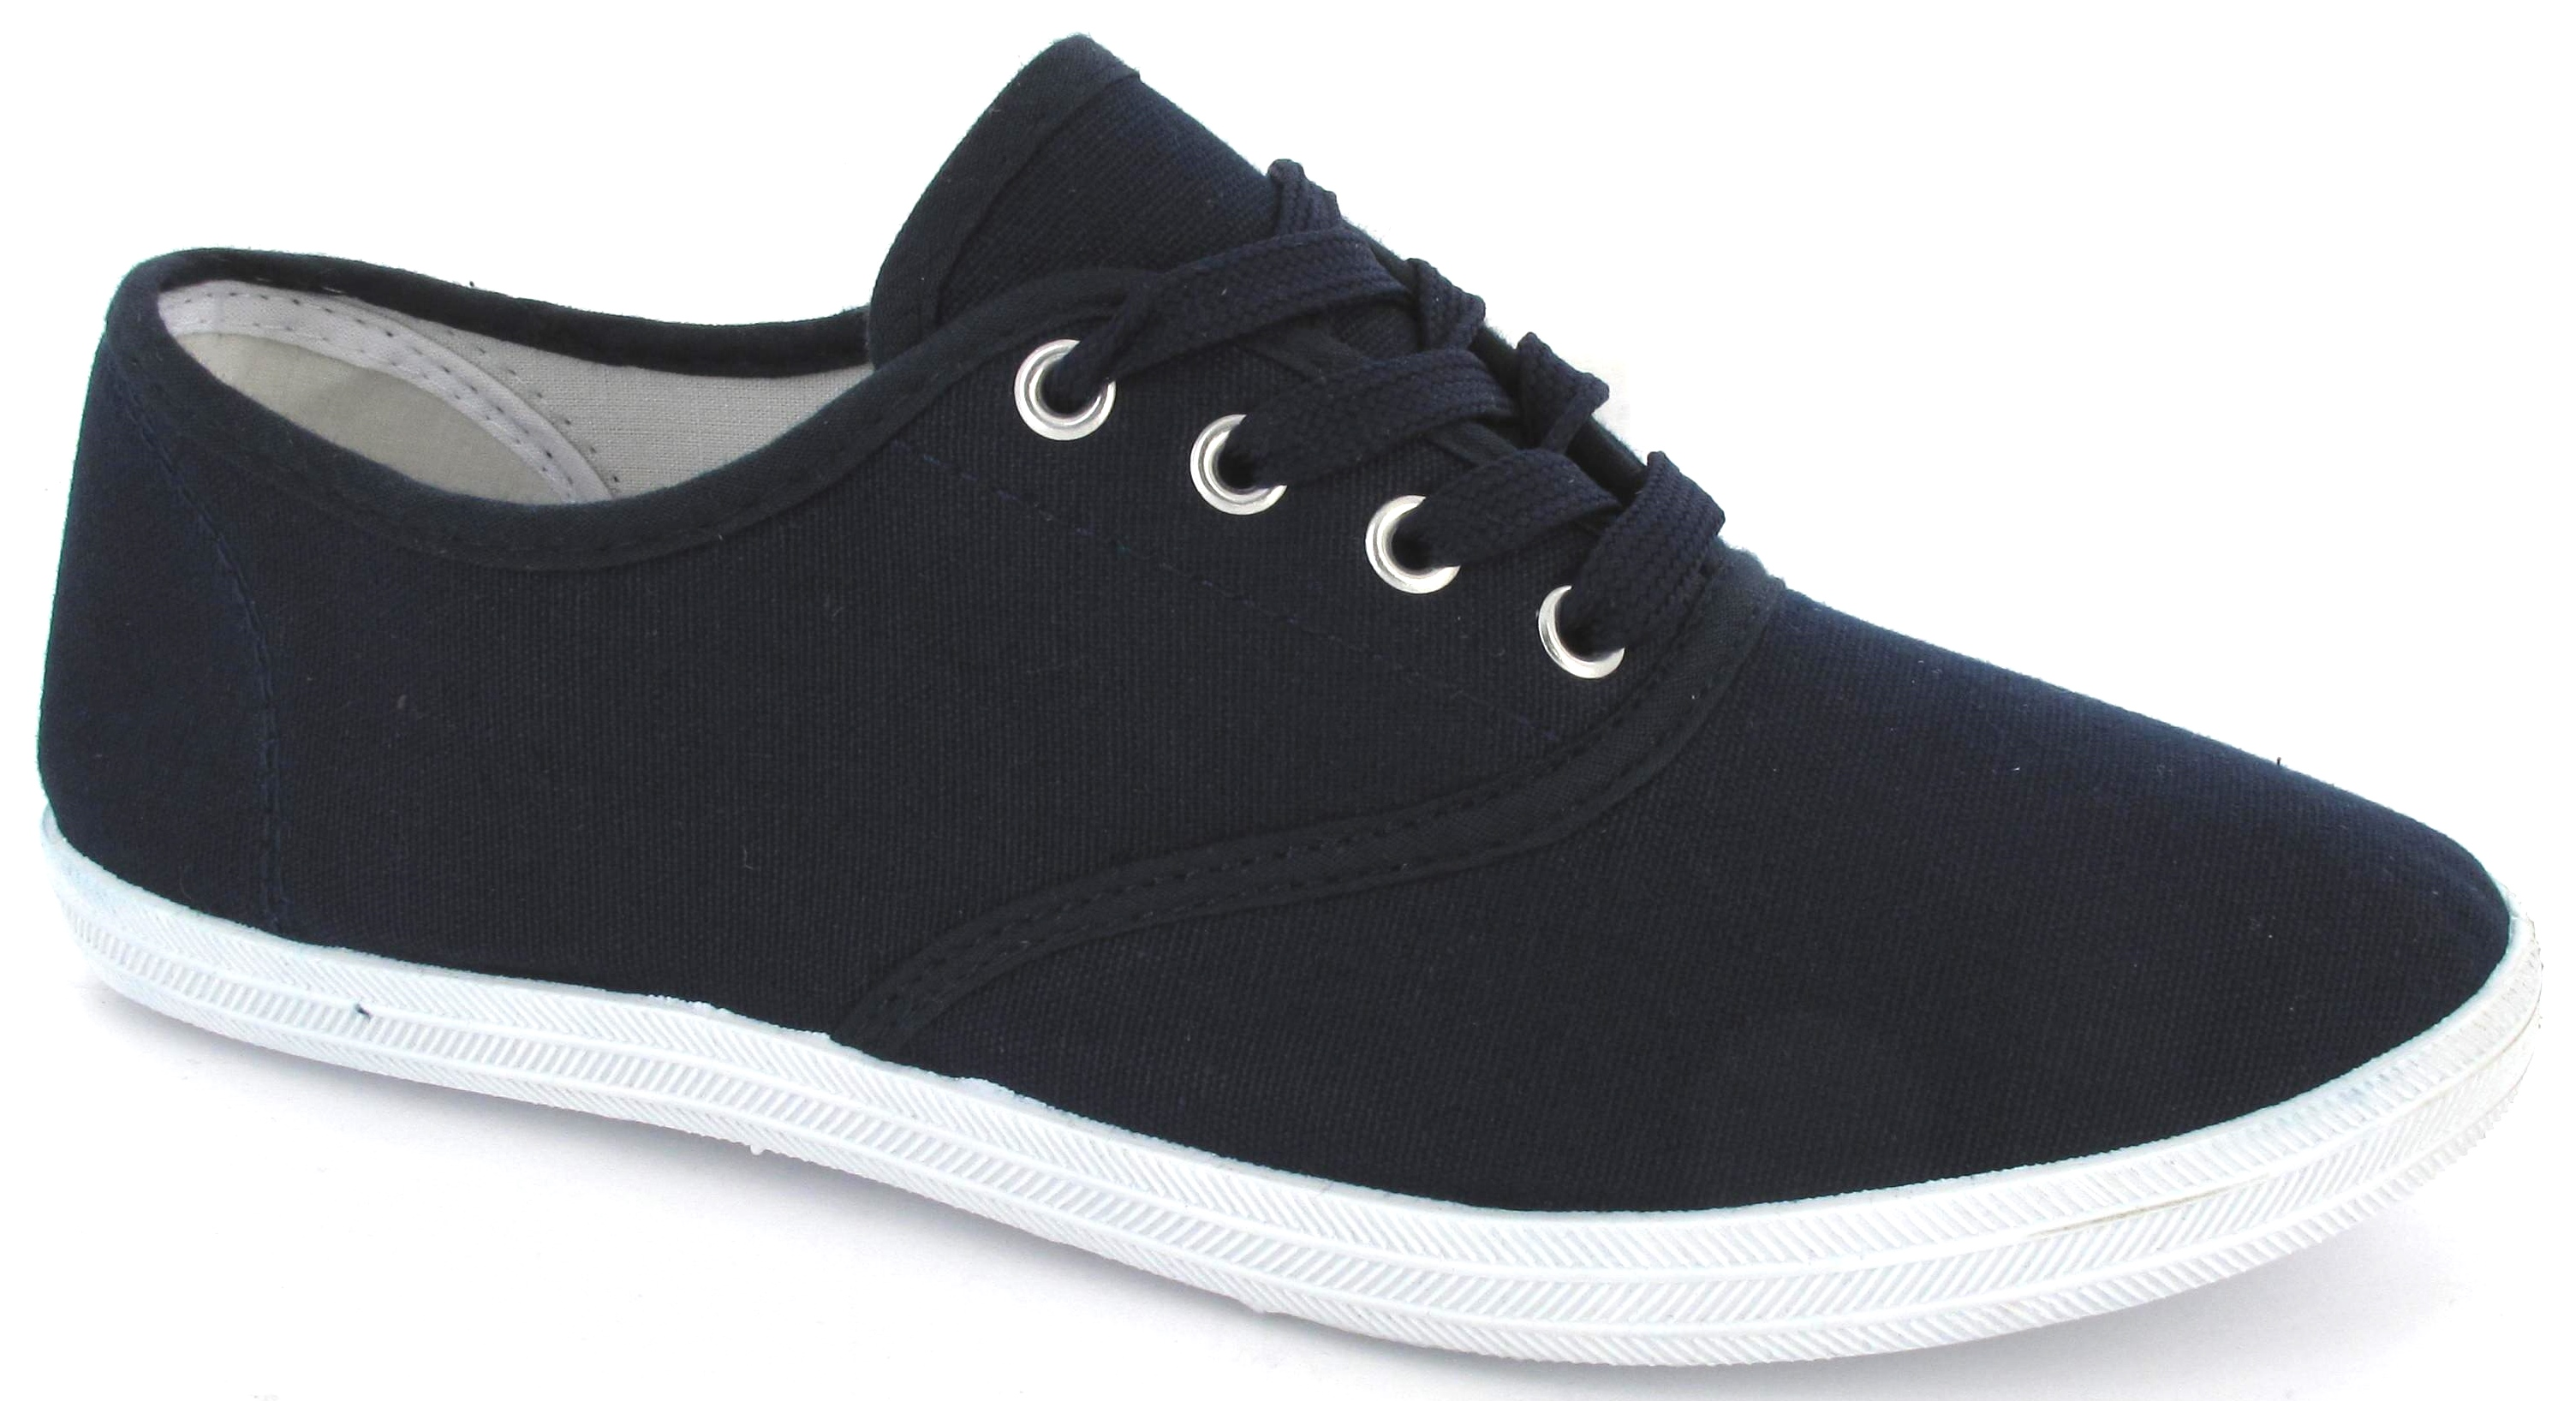 Everyone needs a pair of plimsolls for their shoe collection, and when you're not in your high heels, a pair of cute lace-up shoes always does the trick. Choose from your favourite brands like Converse and Vans, with classic black and white canvas shoes to slip on plimsolls and more.